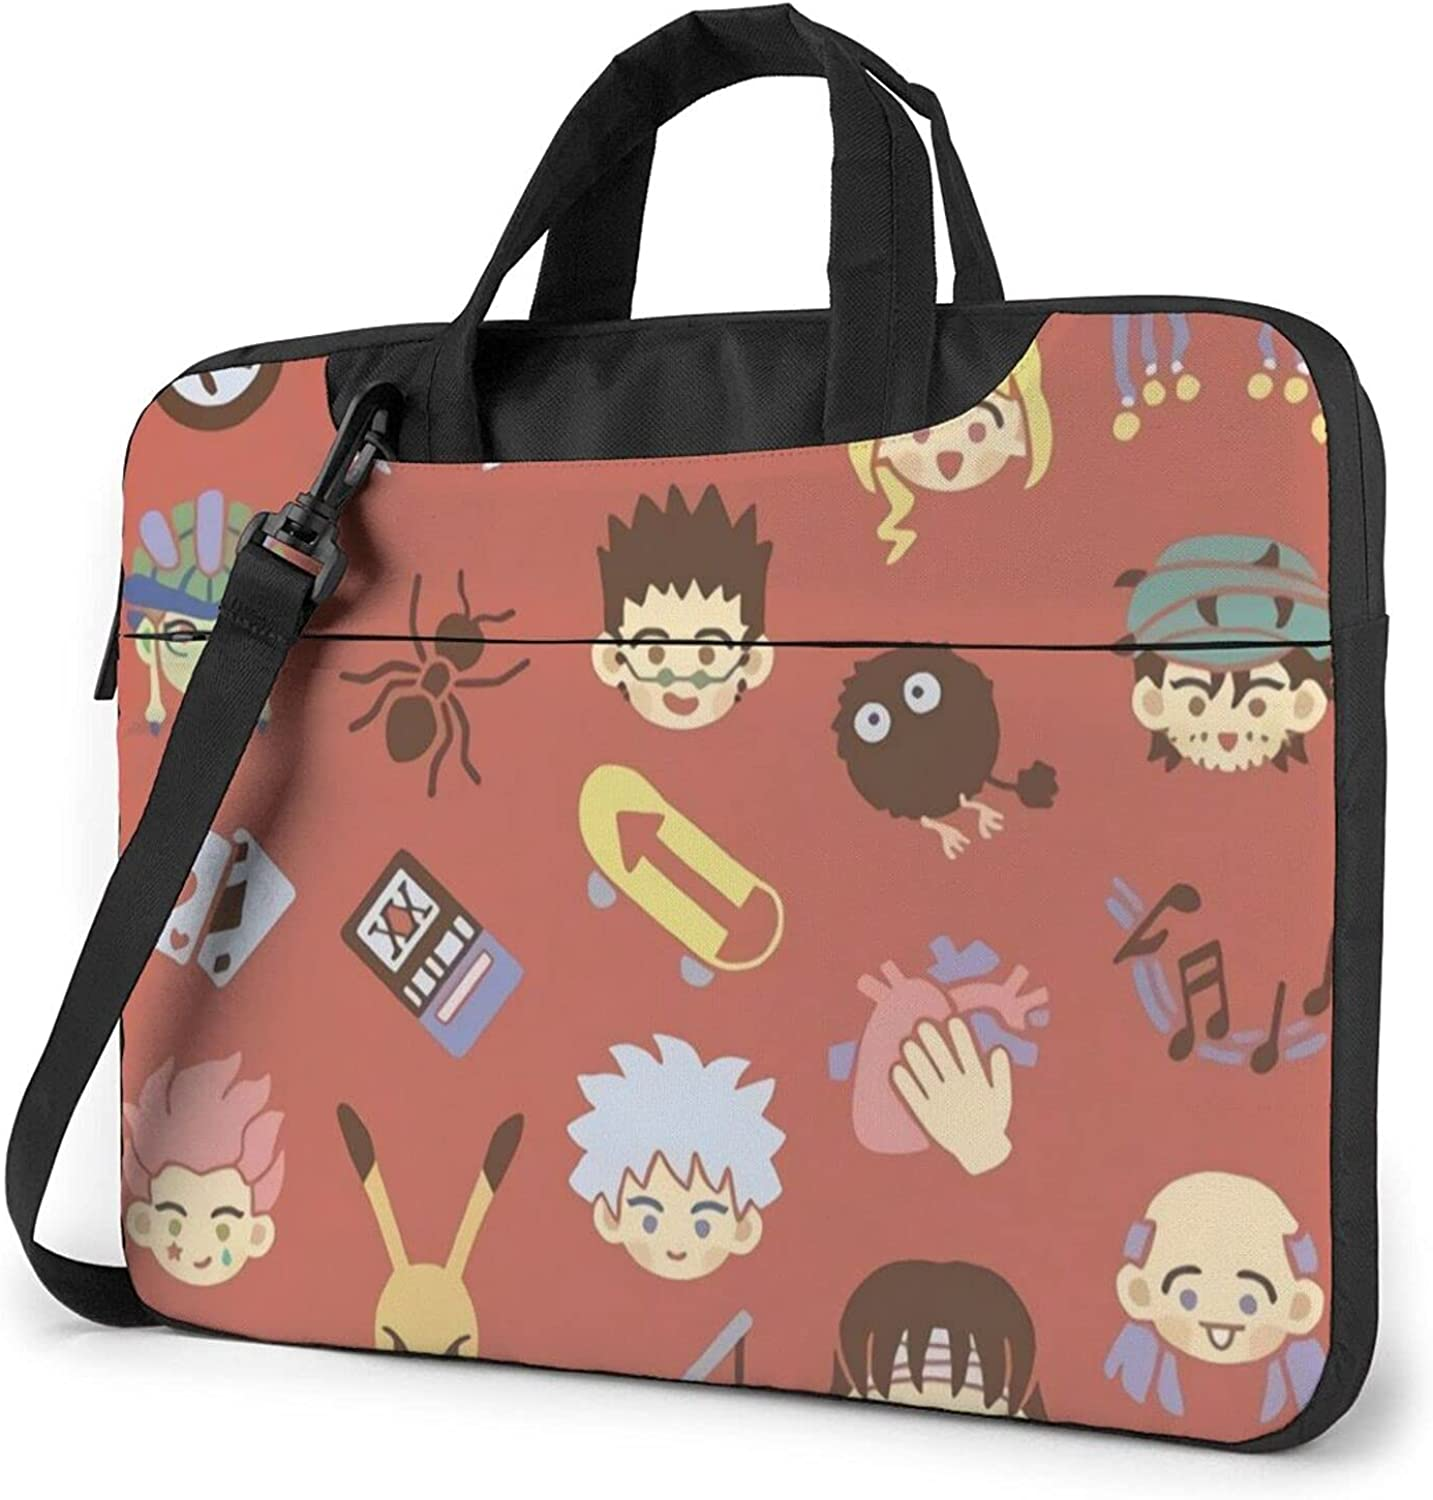 Hunter X Laptop Carrying Case Hand Max 69% OFF Briefcase Limited time trial price Bag Shoulder